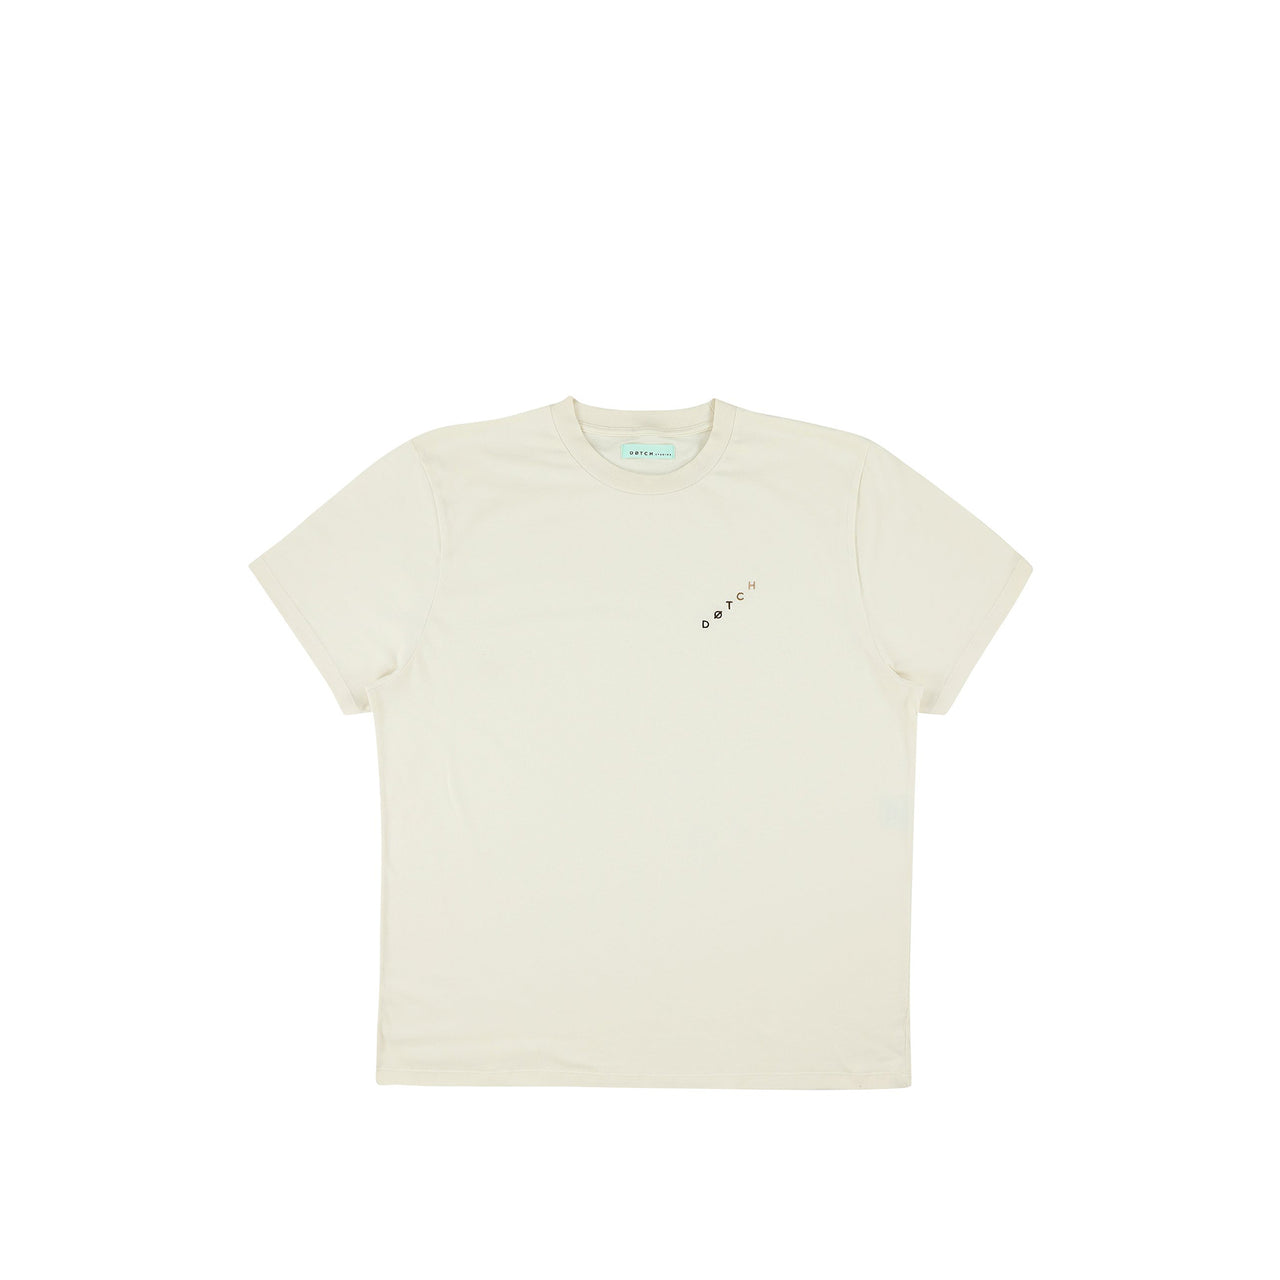 .GALLERY SHIRT - TAN